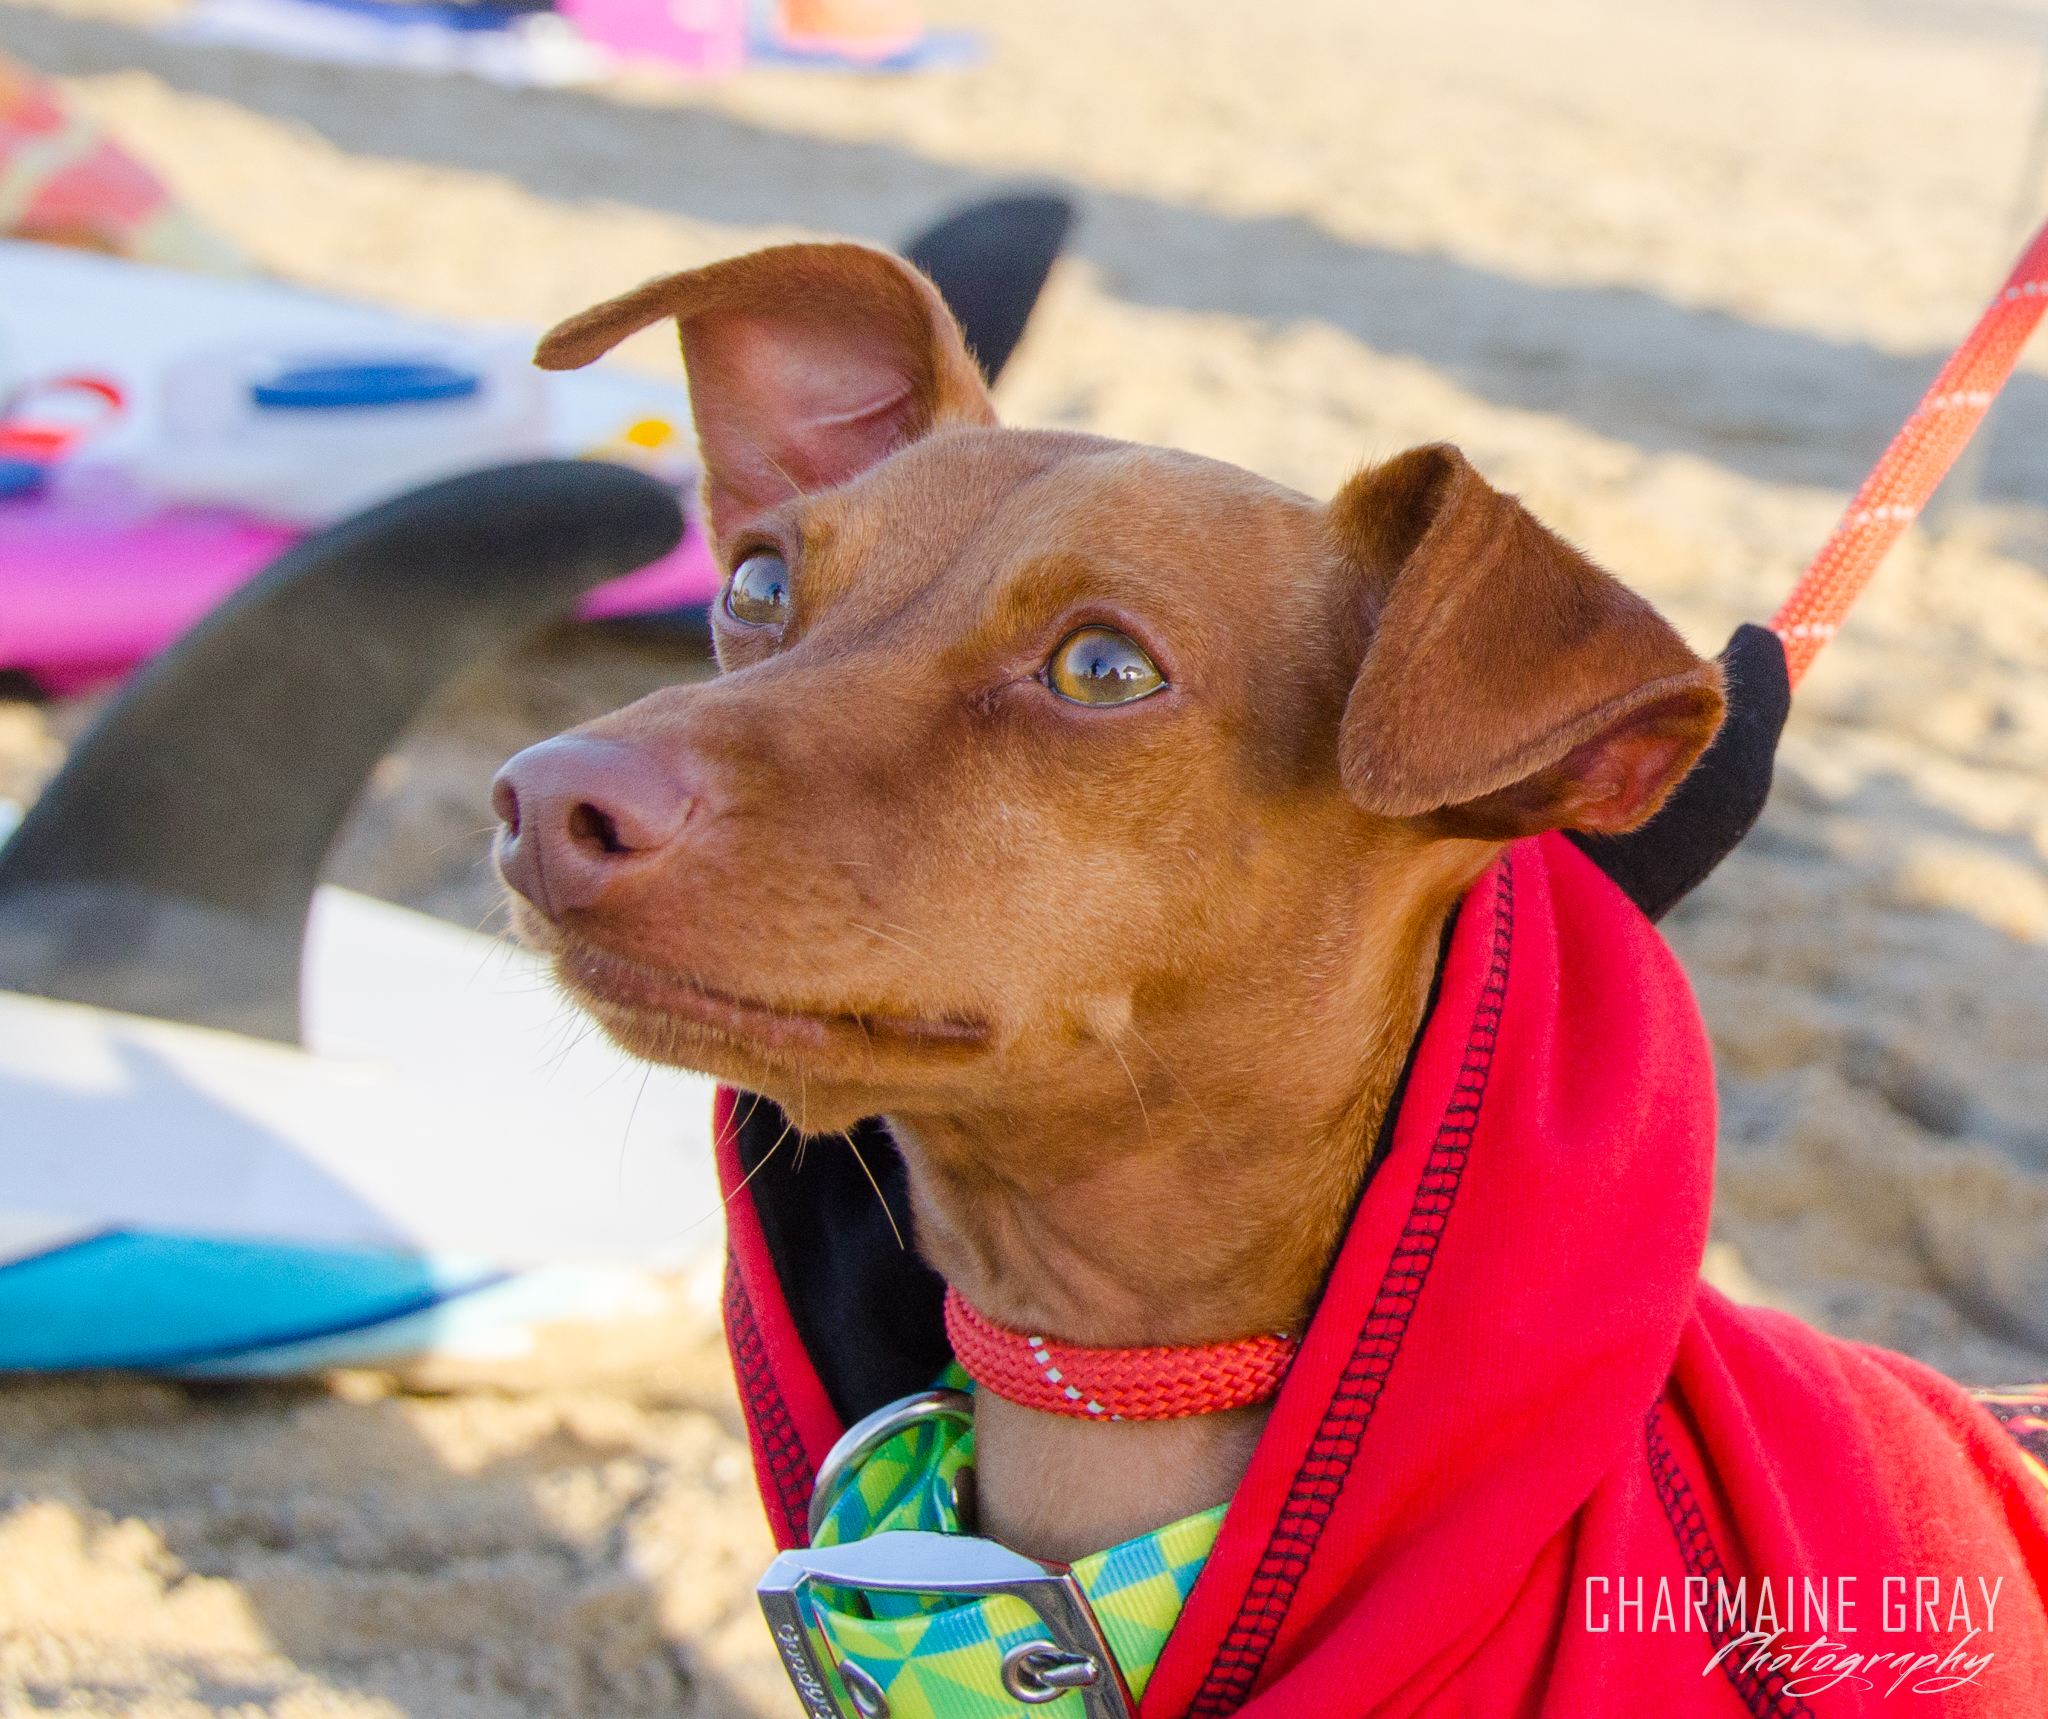 pet photographer, pet photography, pet portrait, pet, animal, charmaine gray photography, charmaine gray pet photography, san diego,dog,canine,california,surf,surfing,miniature pinscher,minpin, rusty the surfing minpin